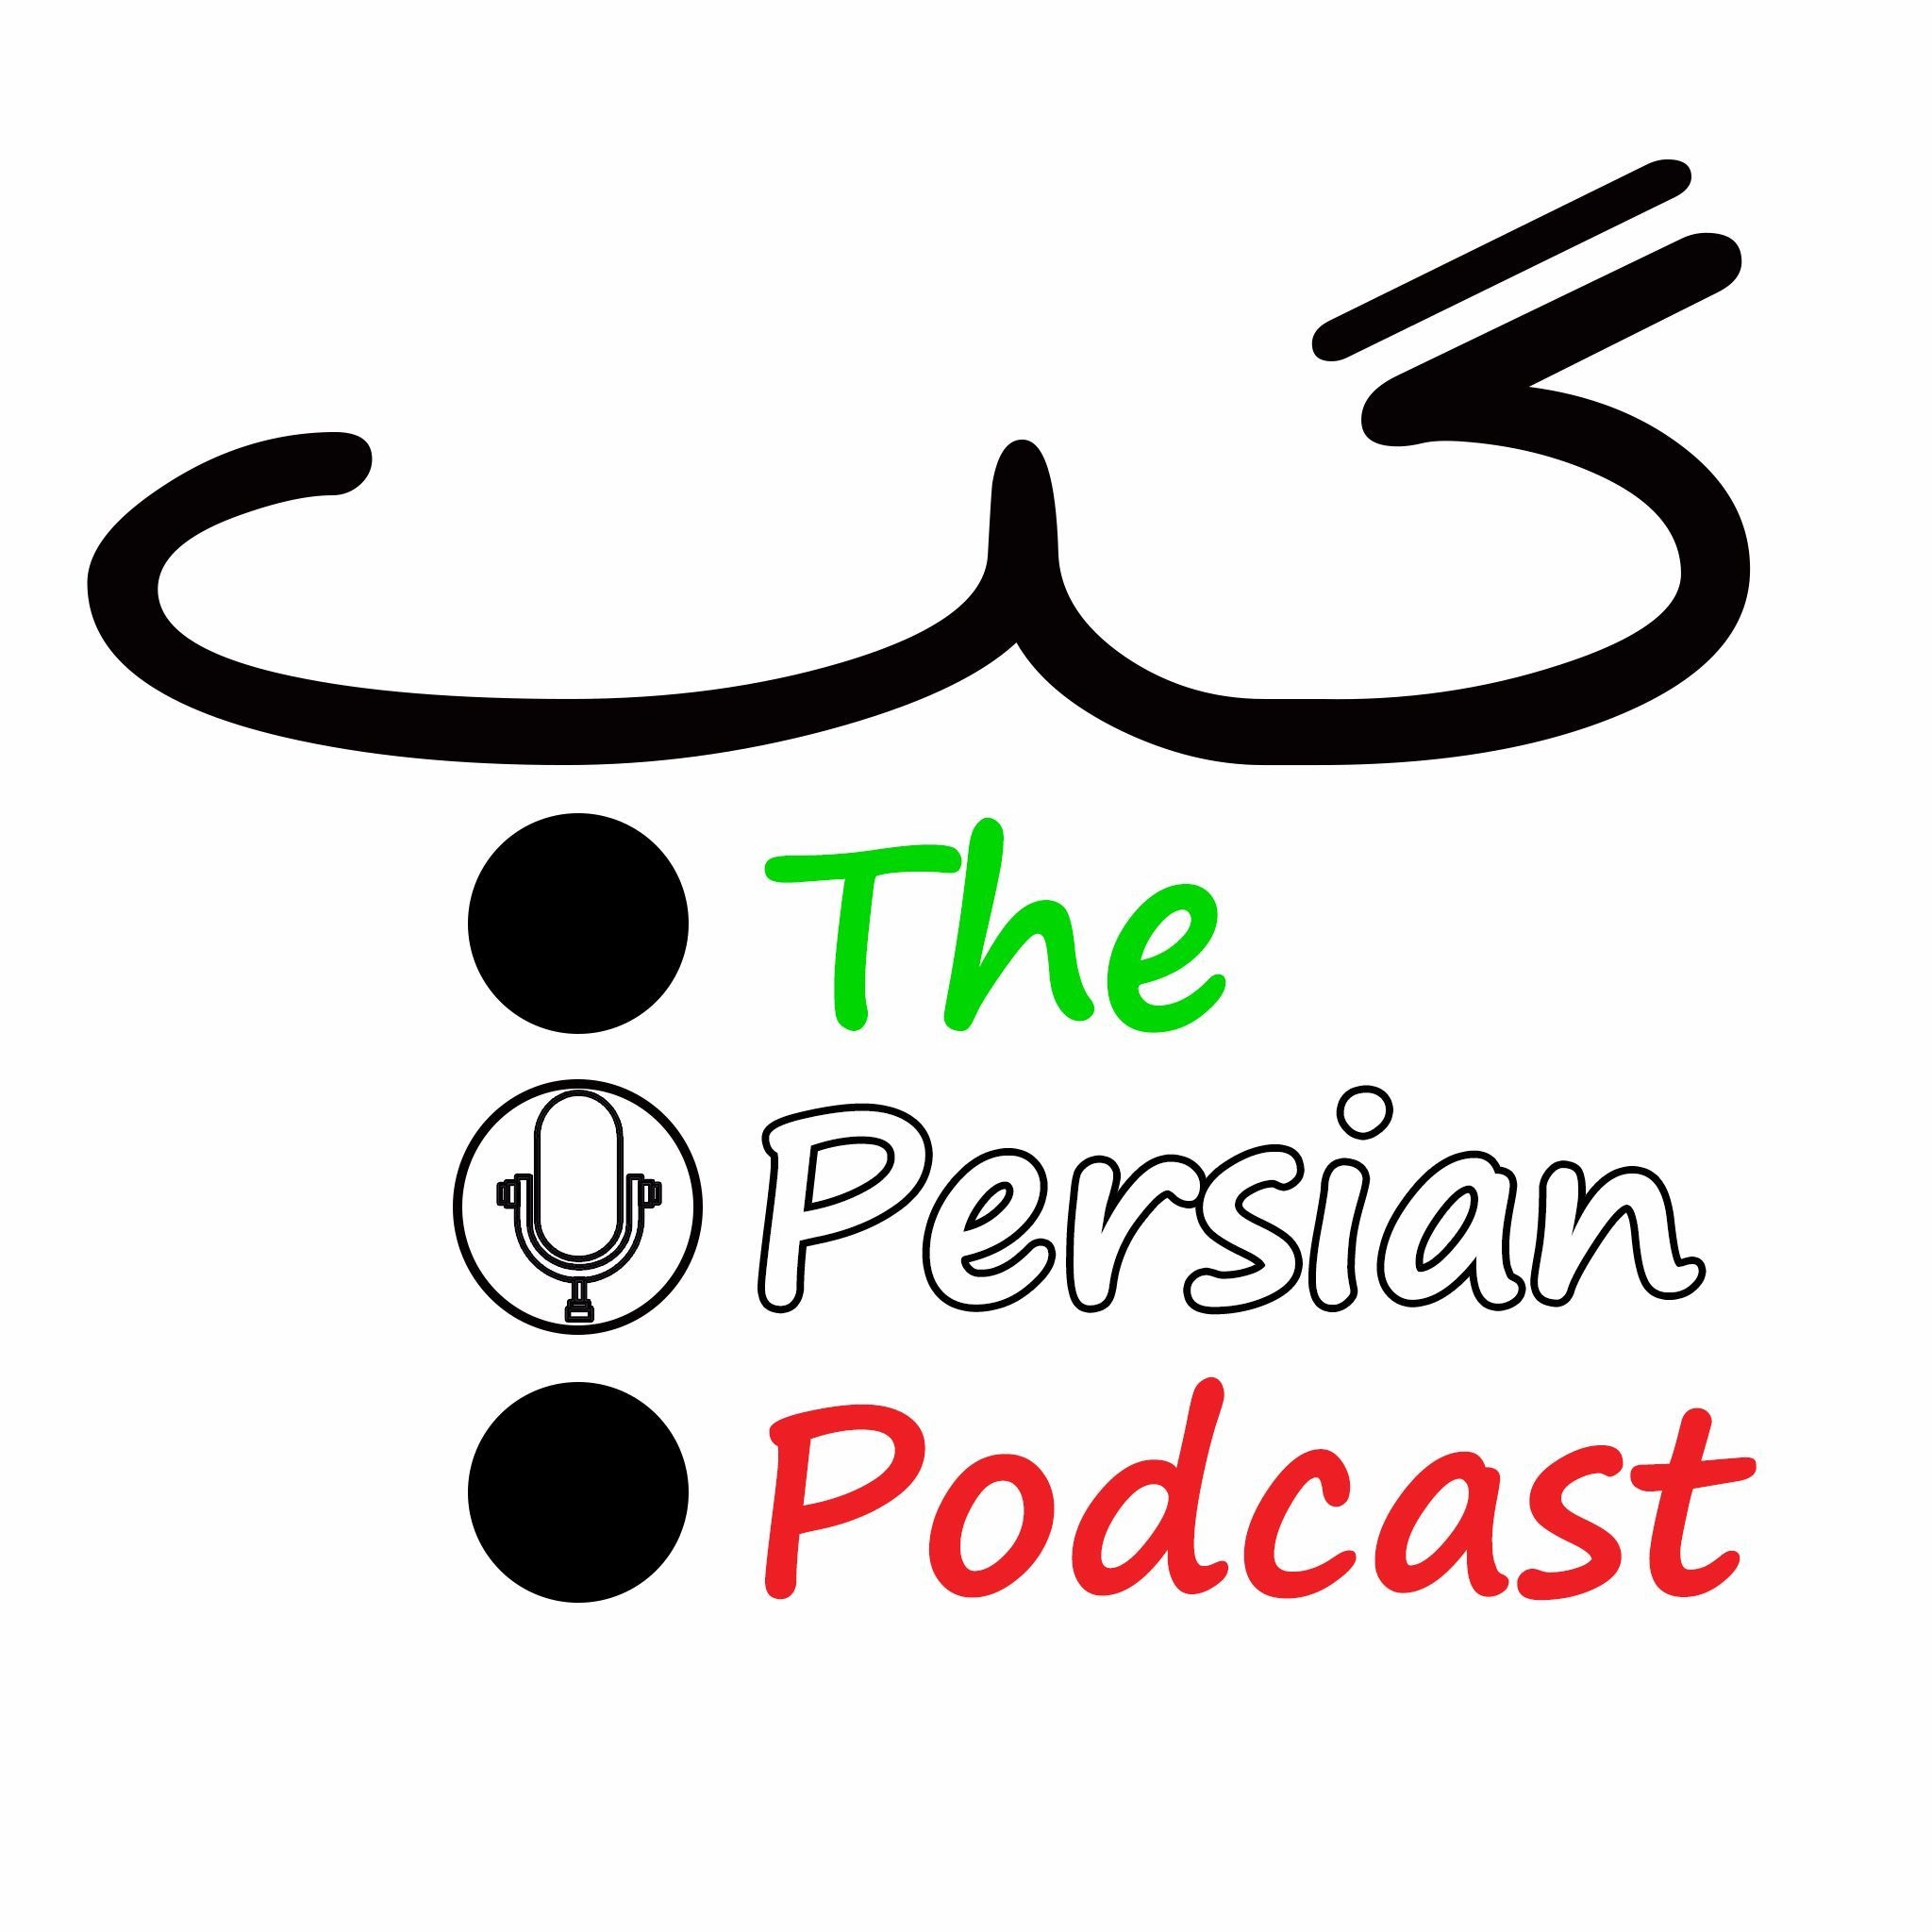 Episode 4.5, Tehran Derby